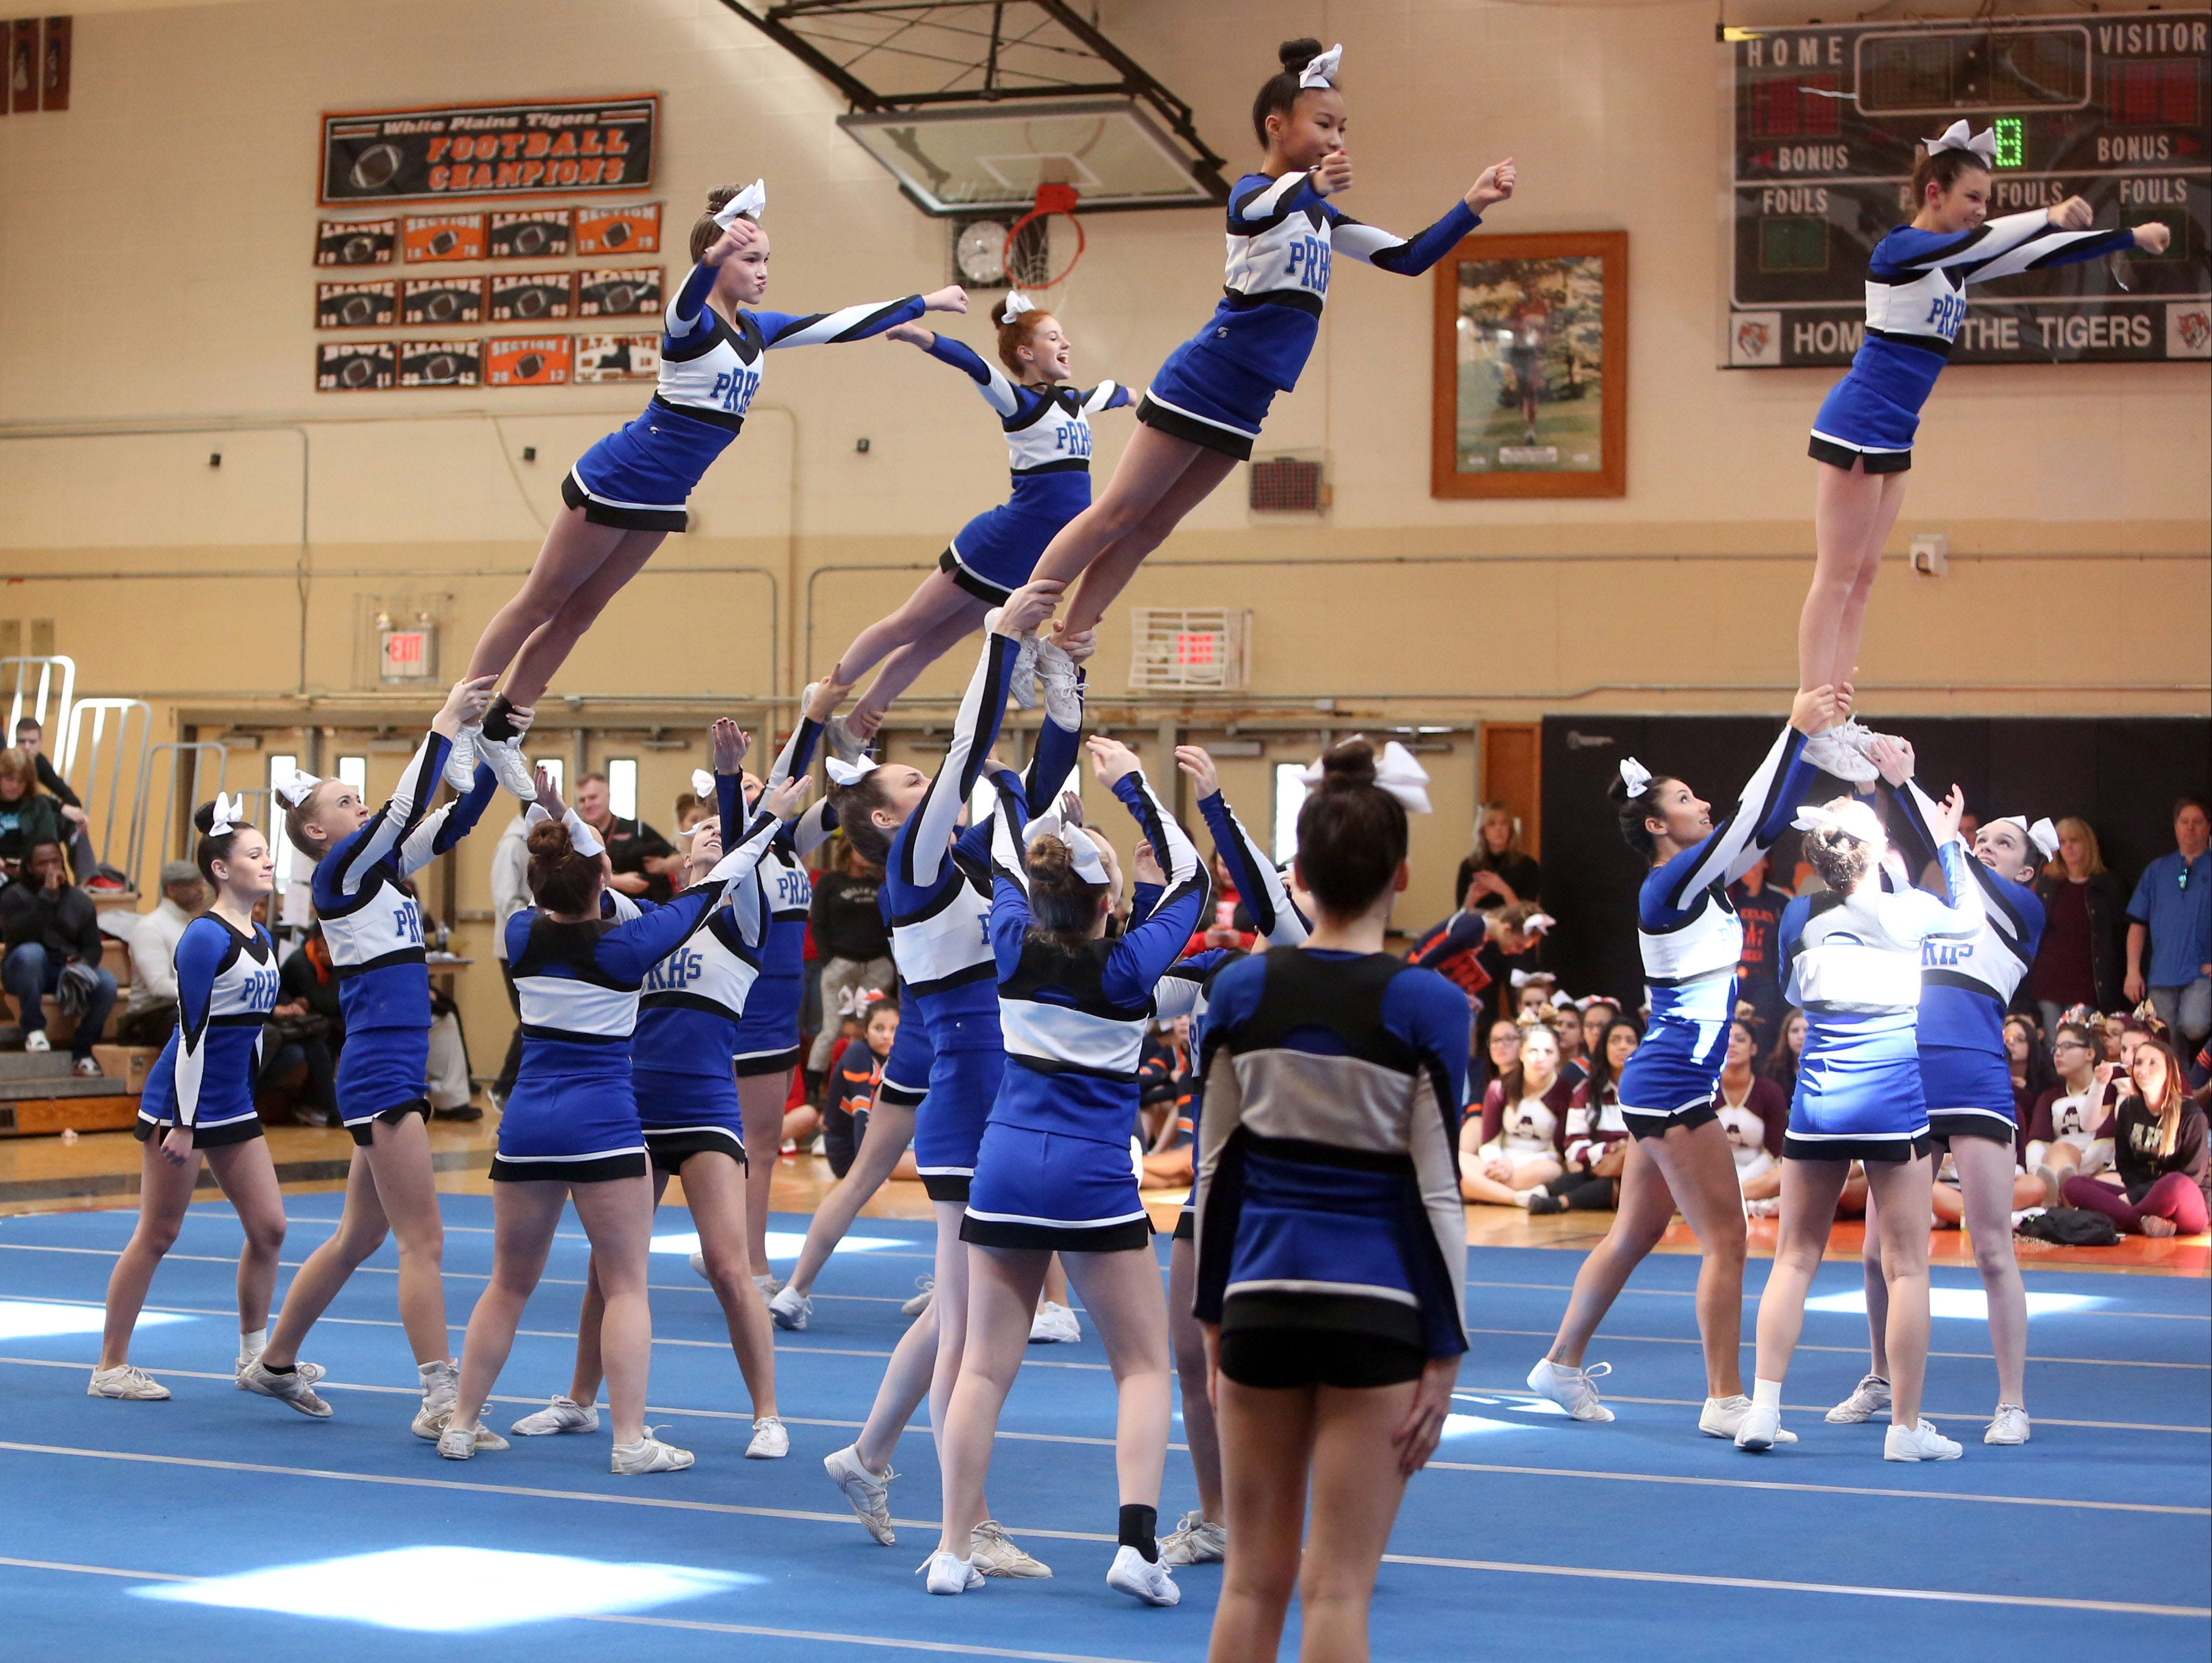 Pearl River High School cheerleaders perform during the Section One Cheerleading Finals 2016 at White Plains High School, Feb. 27, 2016.